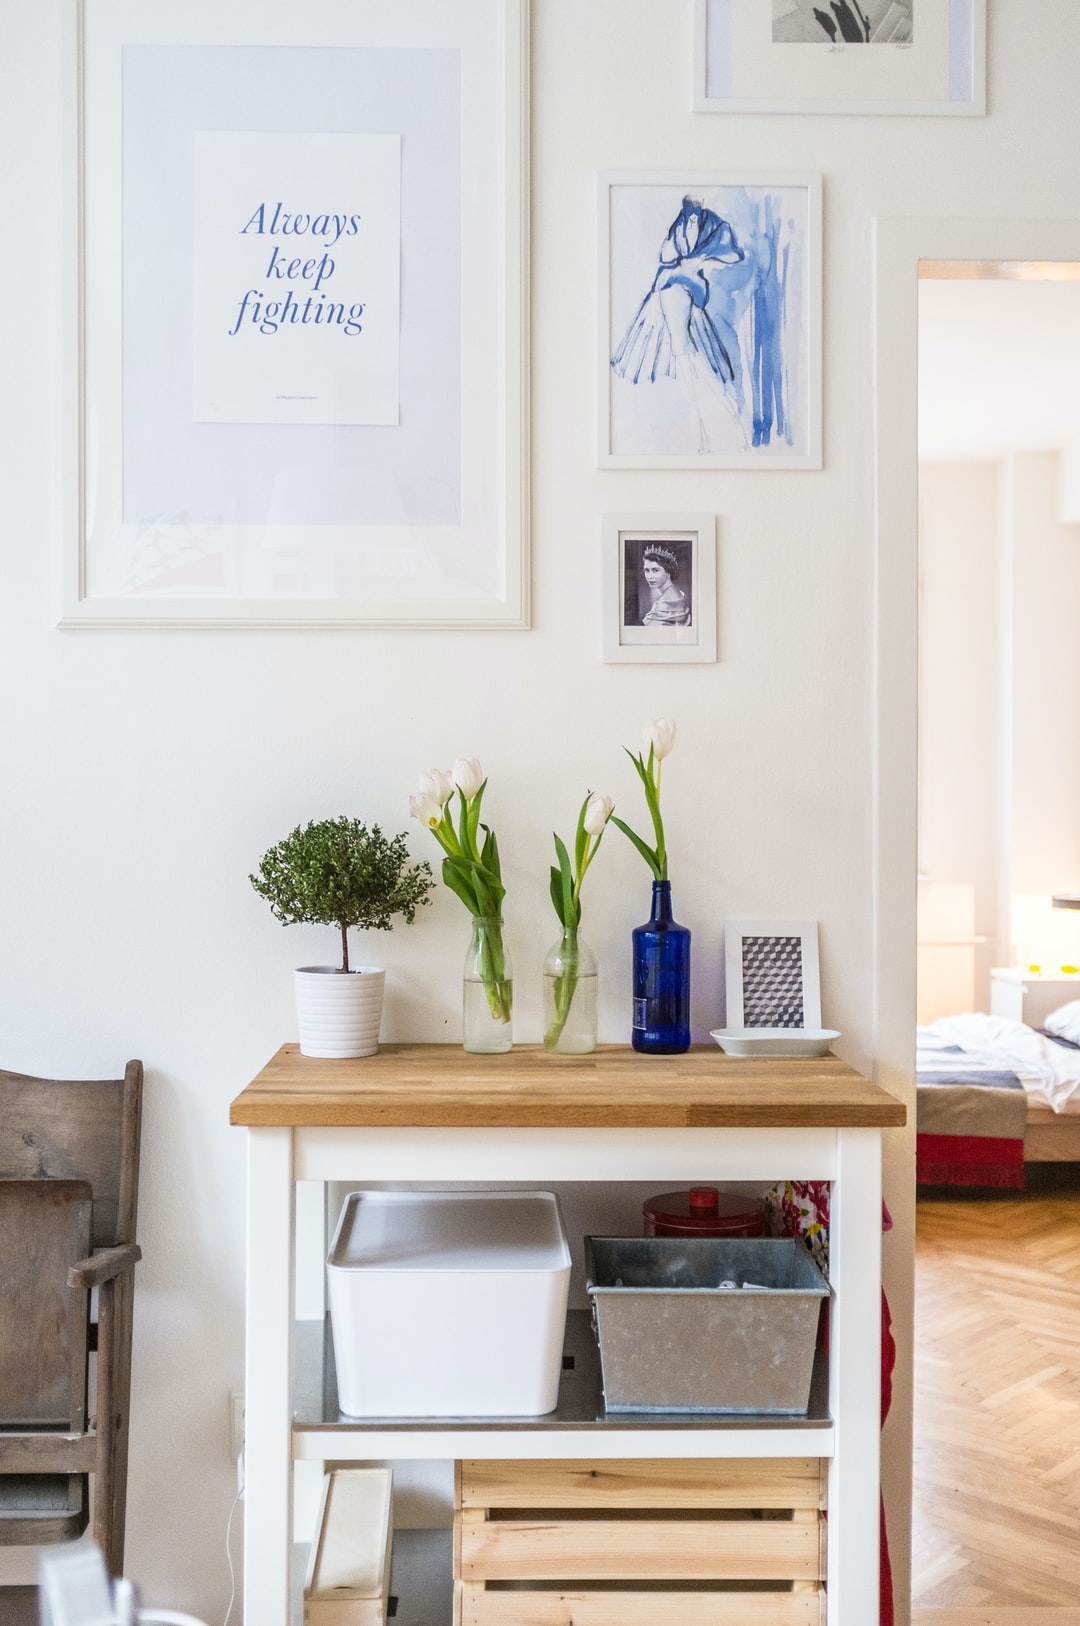 Free Room Design: White And Brown Wooden End Table Near Wall Inside Room